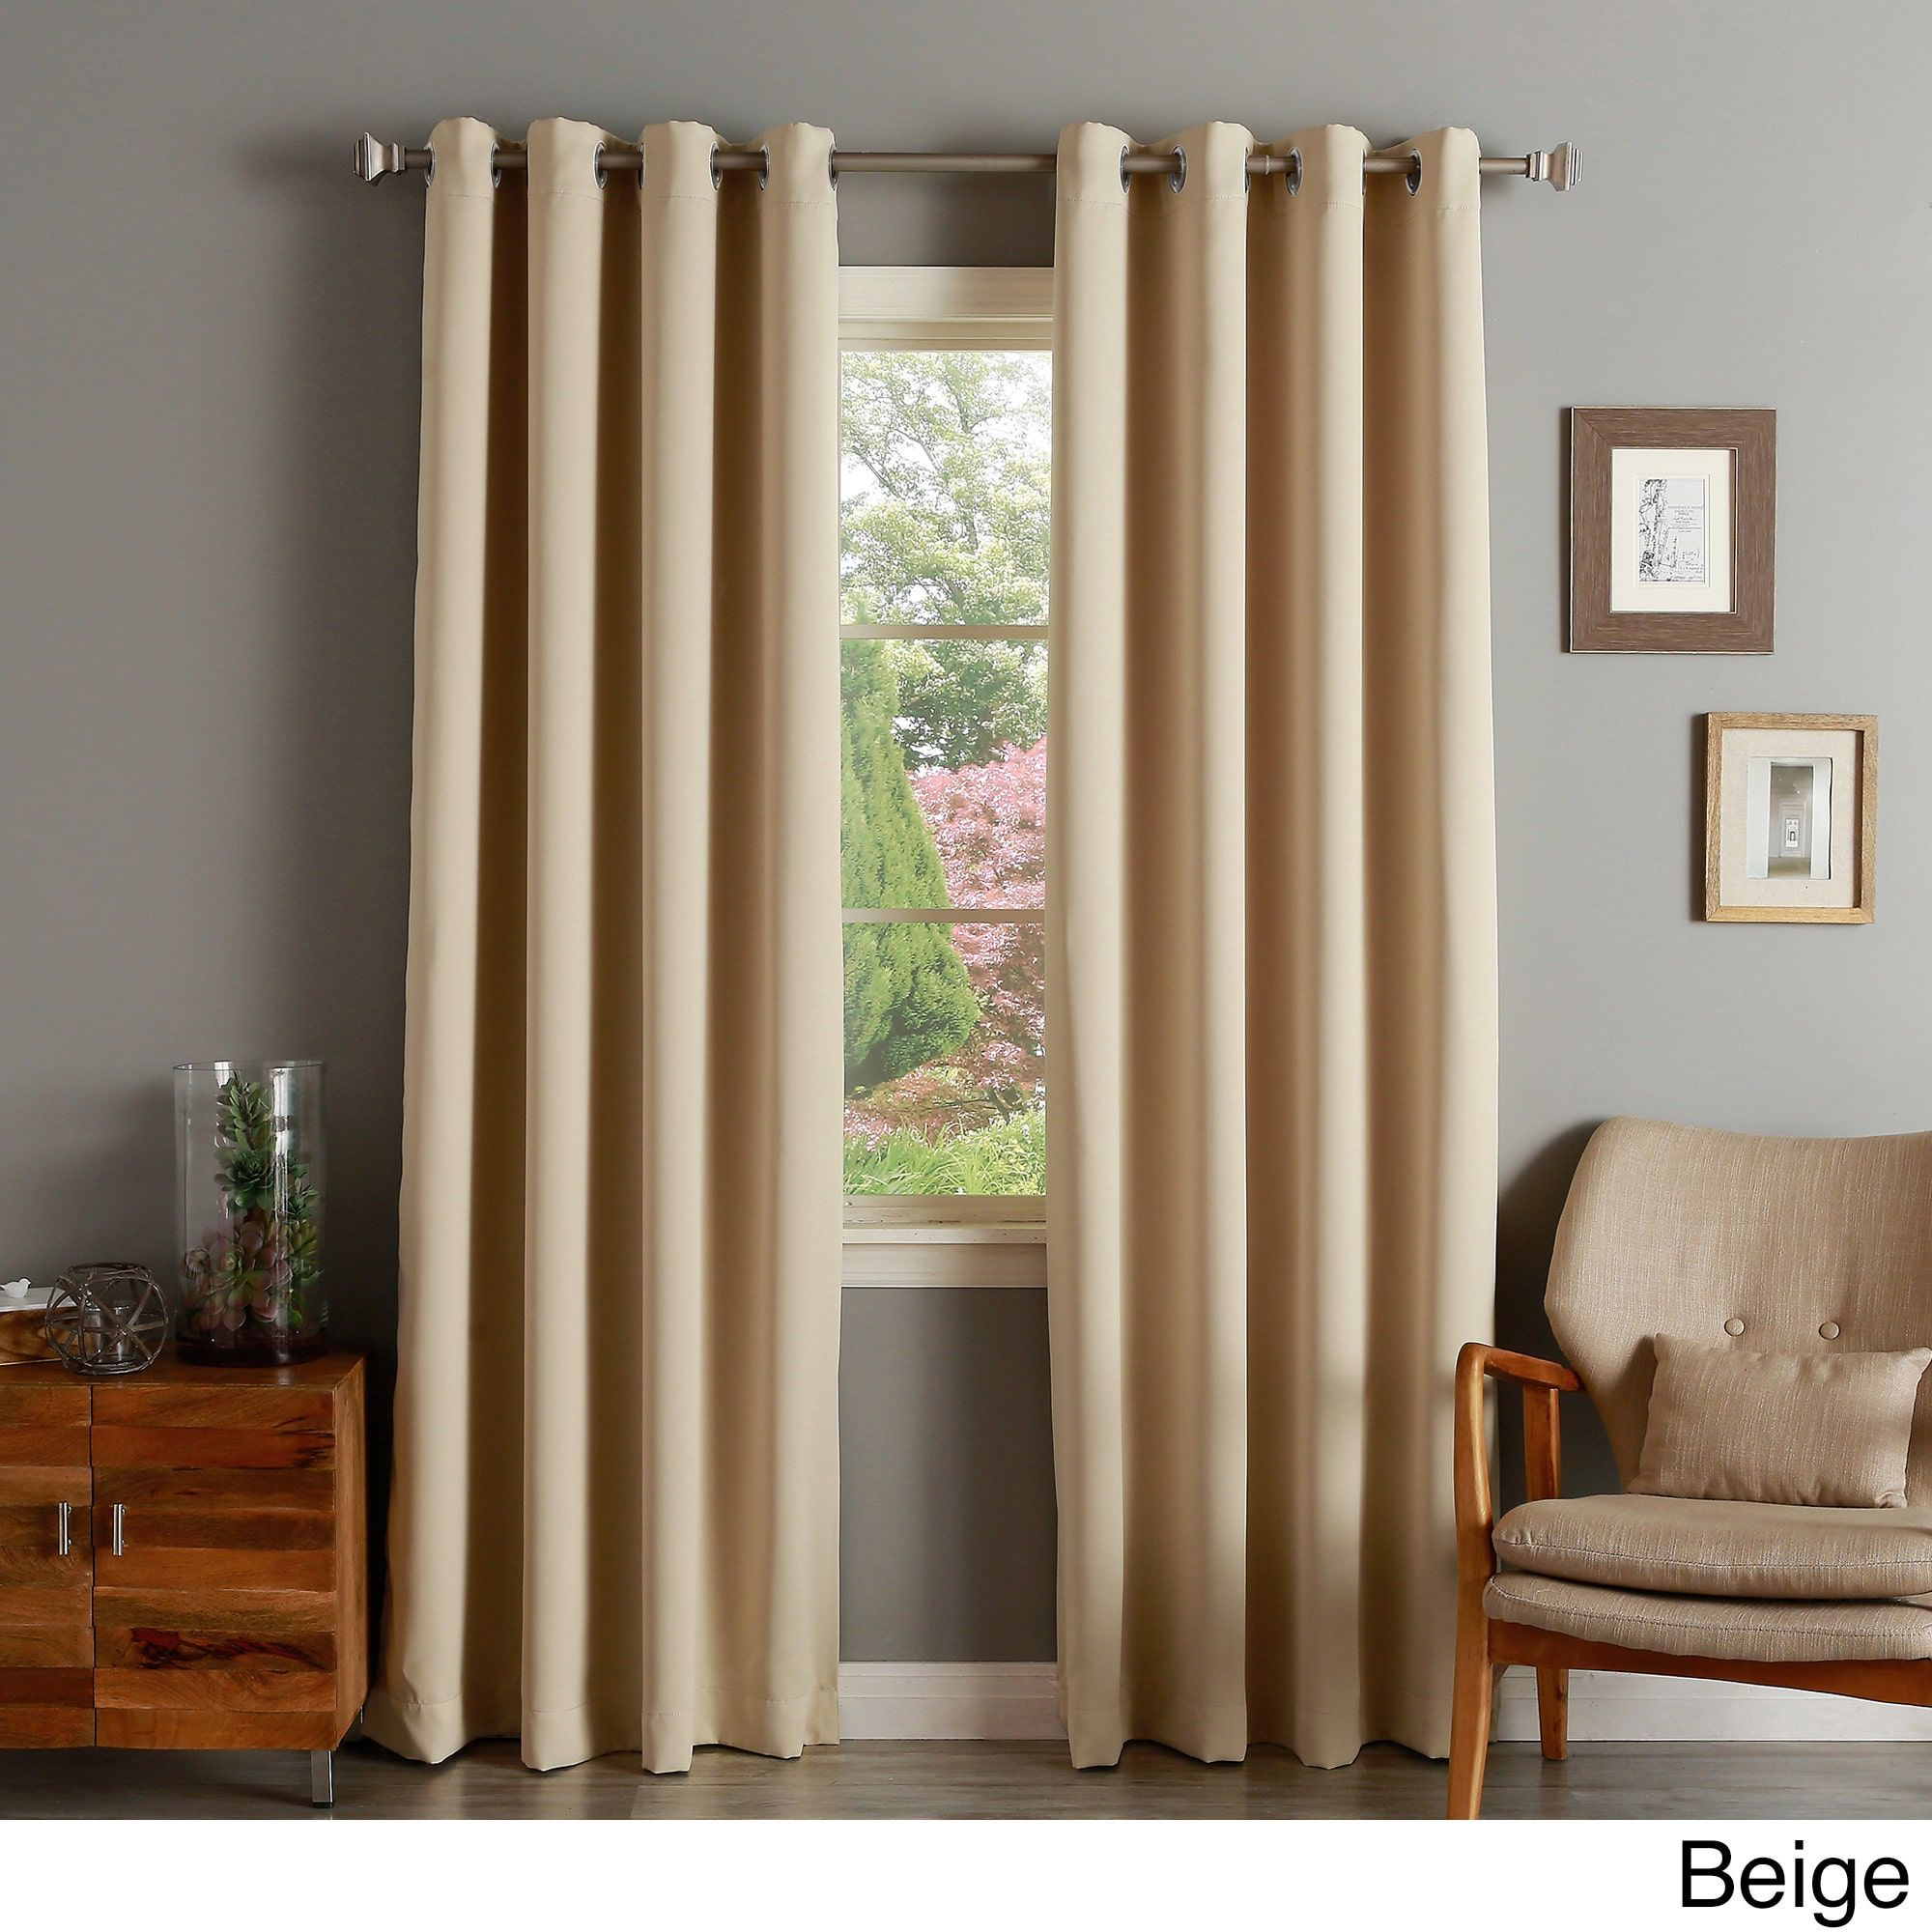 Drapes Thermal | Curtains Heat Insulation | Thermal Insulated Curtains